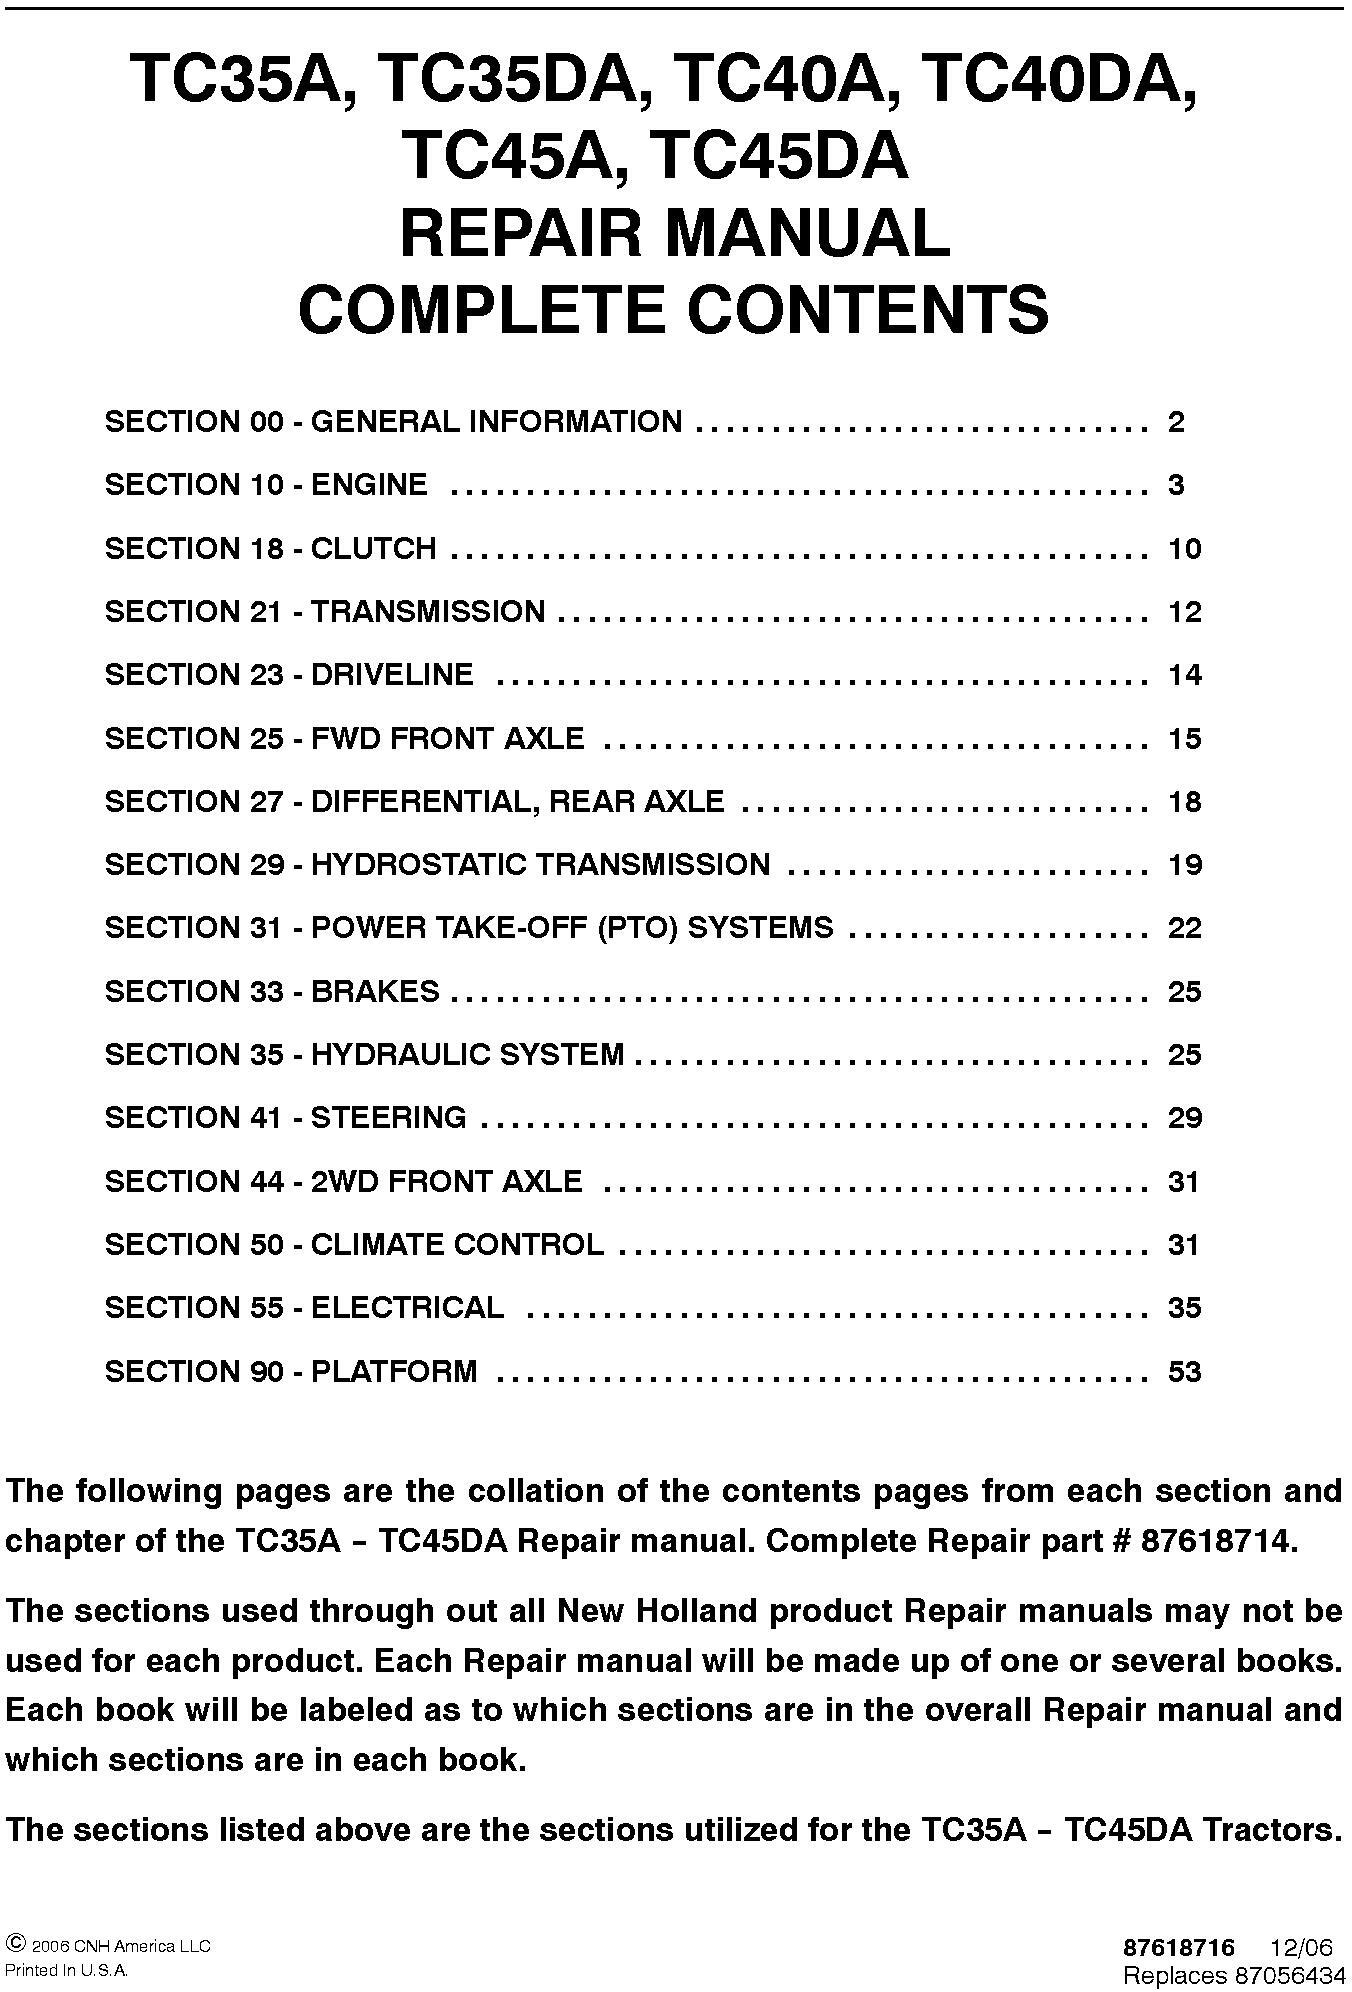 New Holland TC35A, TC35DA, TC40A, TC40DA, TC45A, TC45DA, Tractor Complete Service Manual - 19623